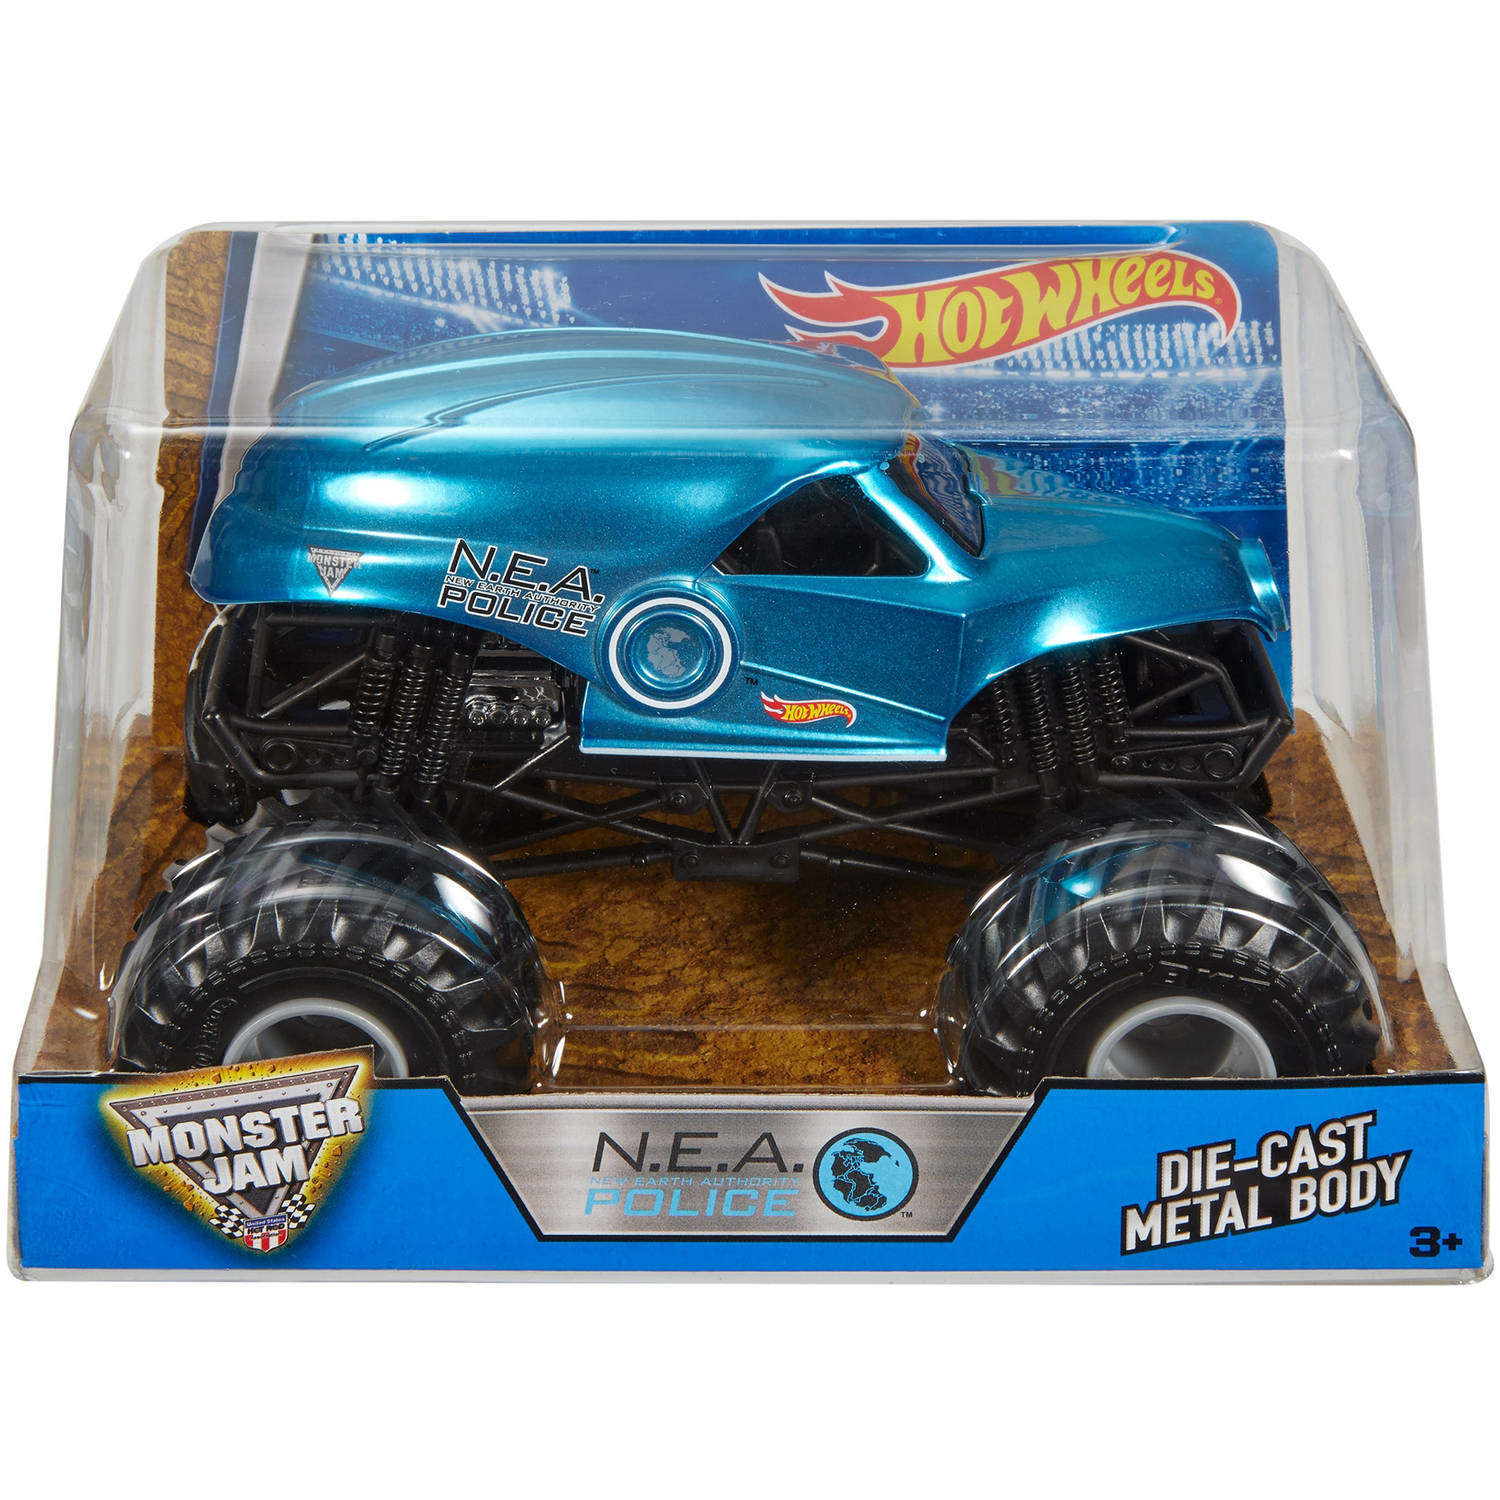 Hot Wheels Monster Jam Nea, Blue